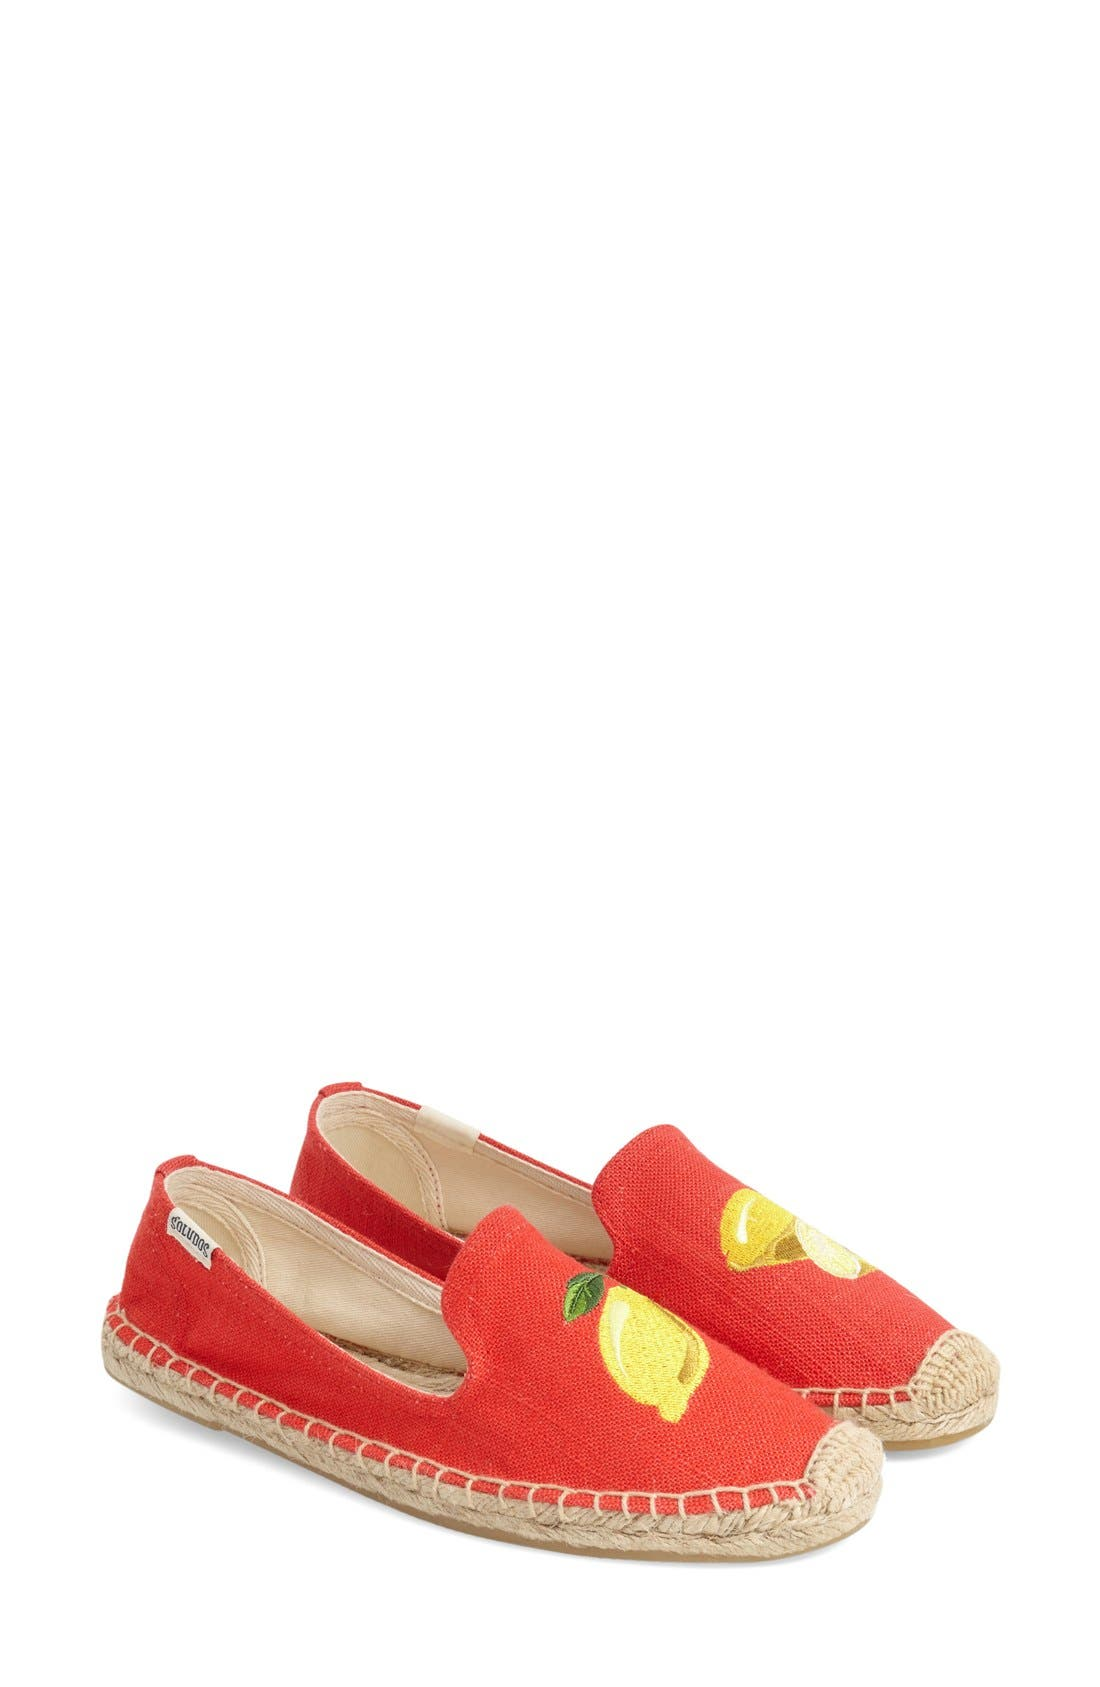 Main Image - Soludos Embroidered Flat (Women)